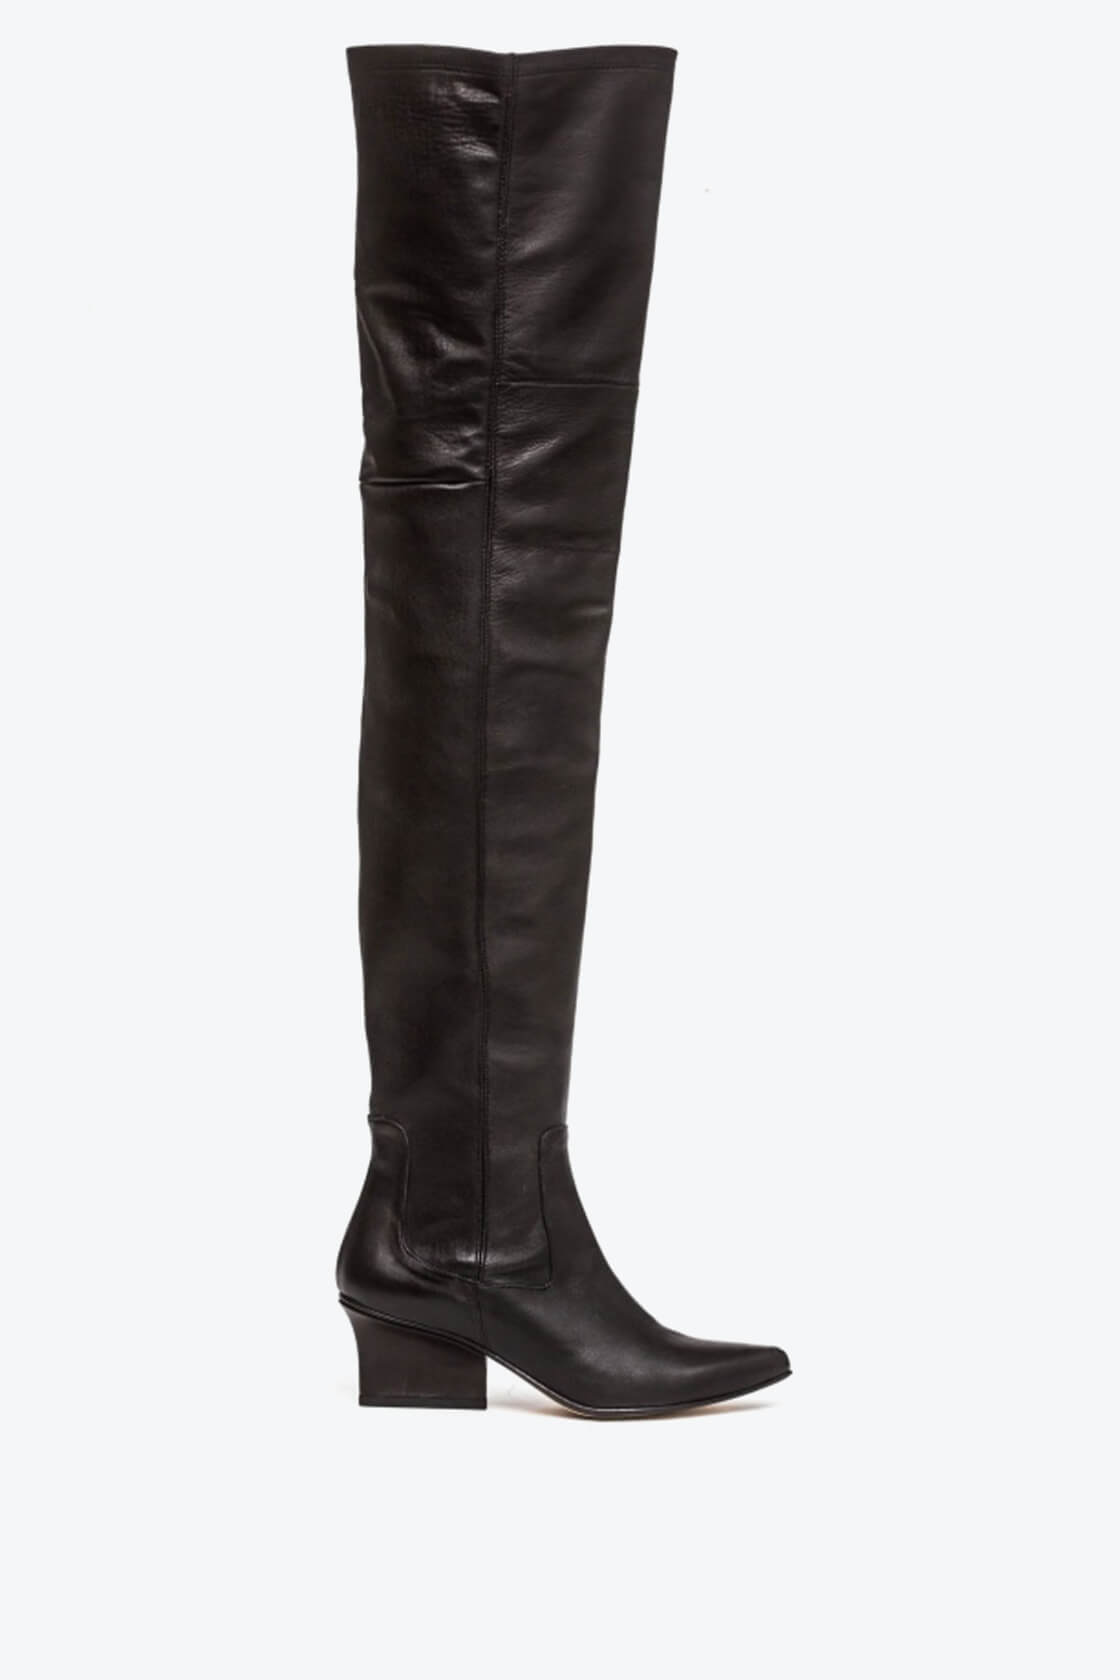 EJK0000069 Harris thigh high boots 1